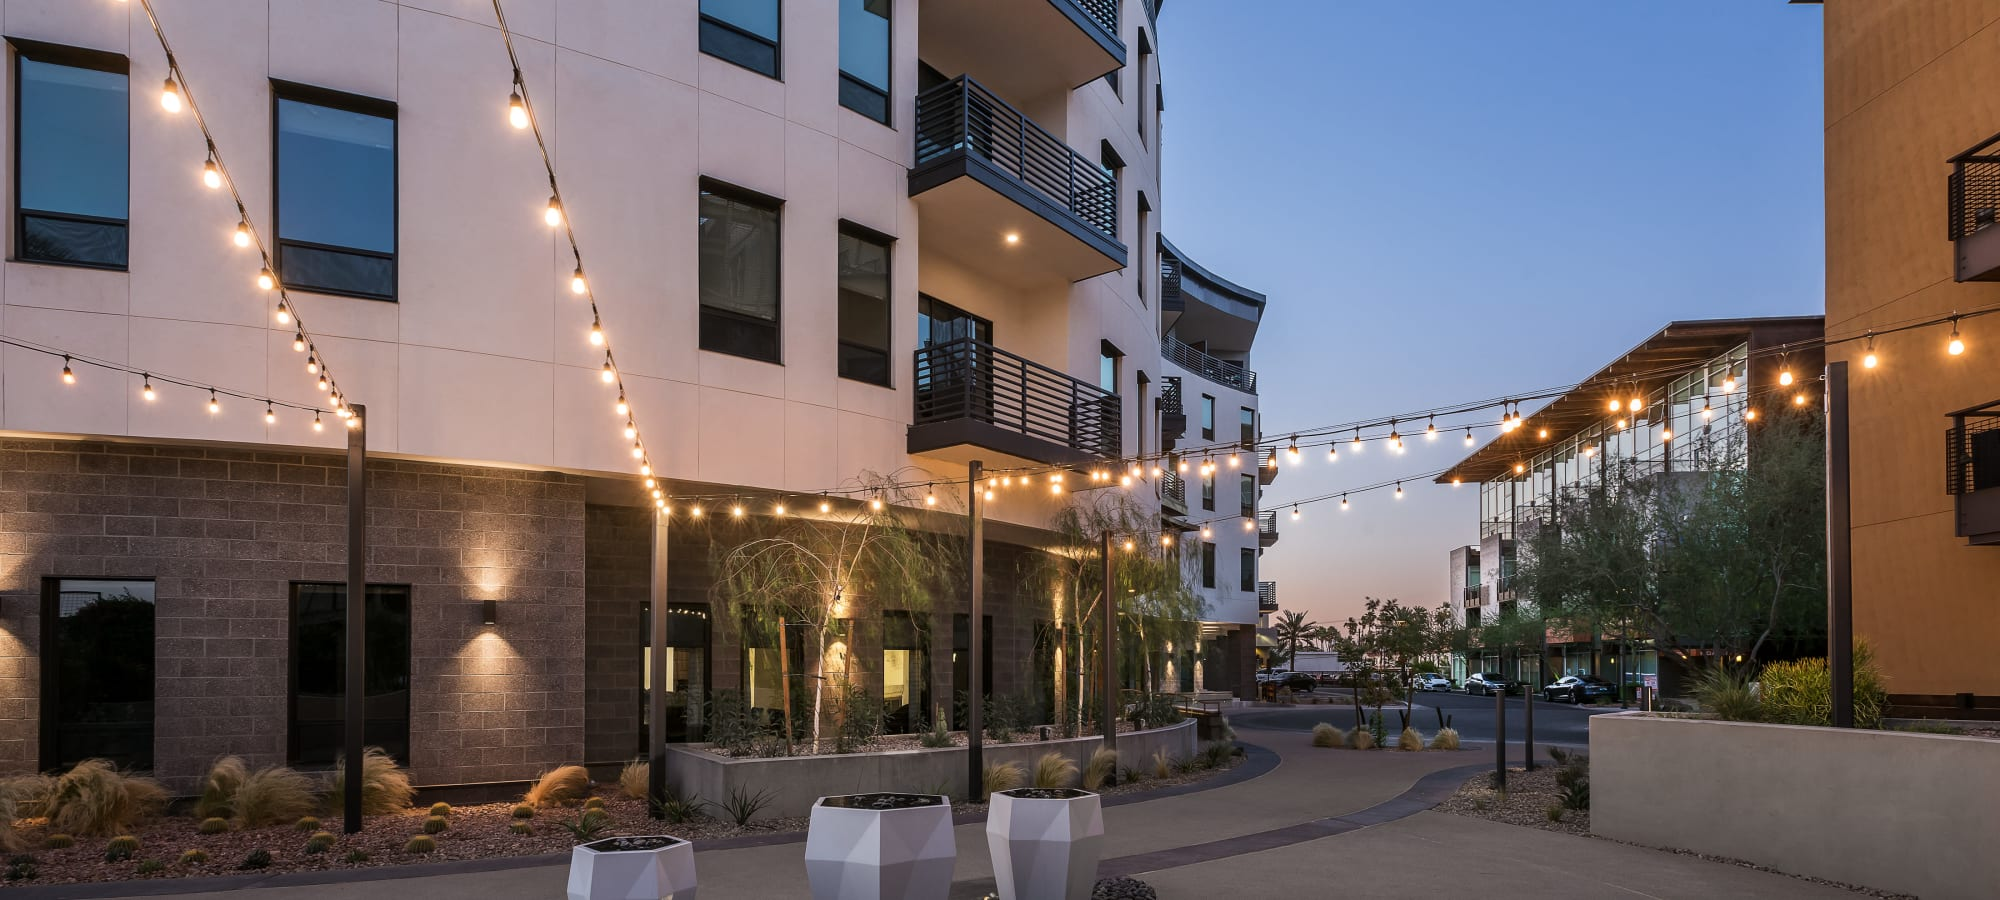 Outdoor patio area with string lights at Gramercy Scottsdale in Scottsdale, Arizona